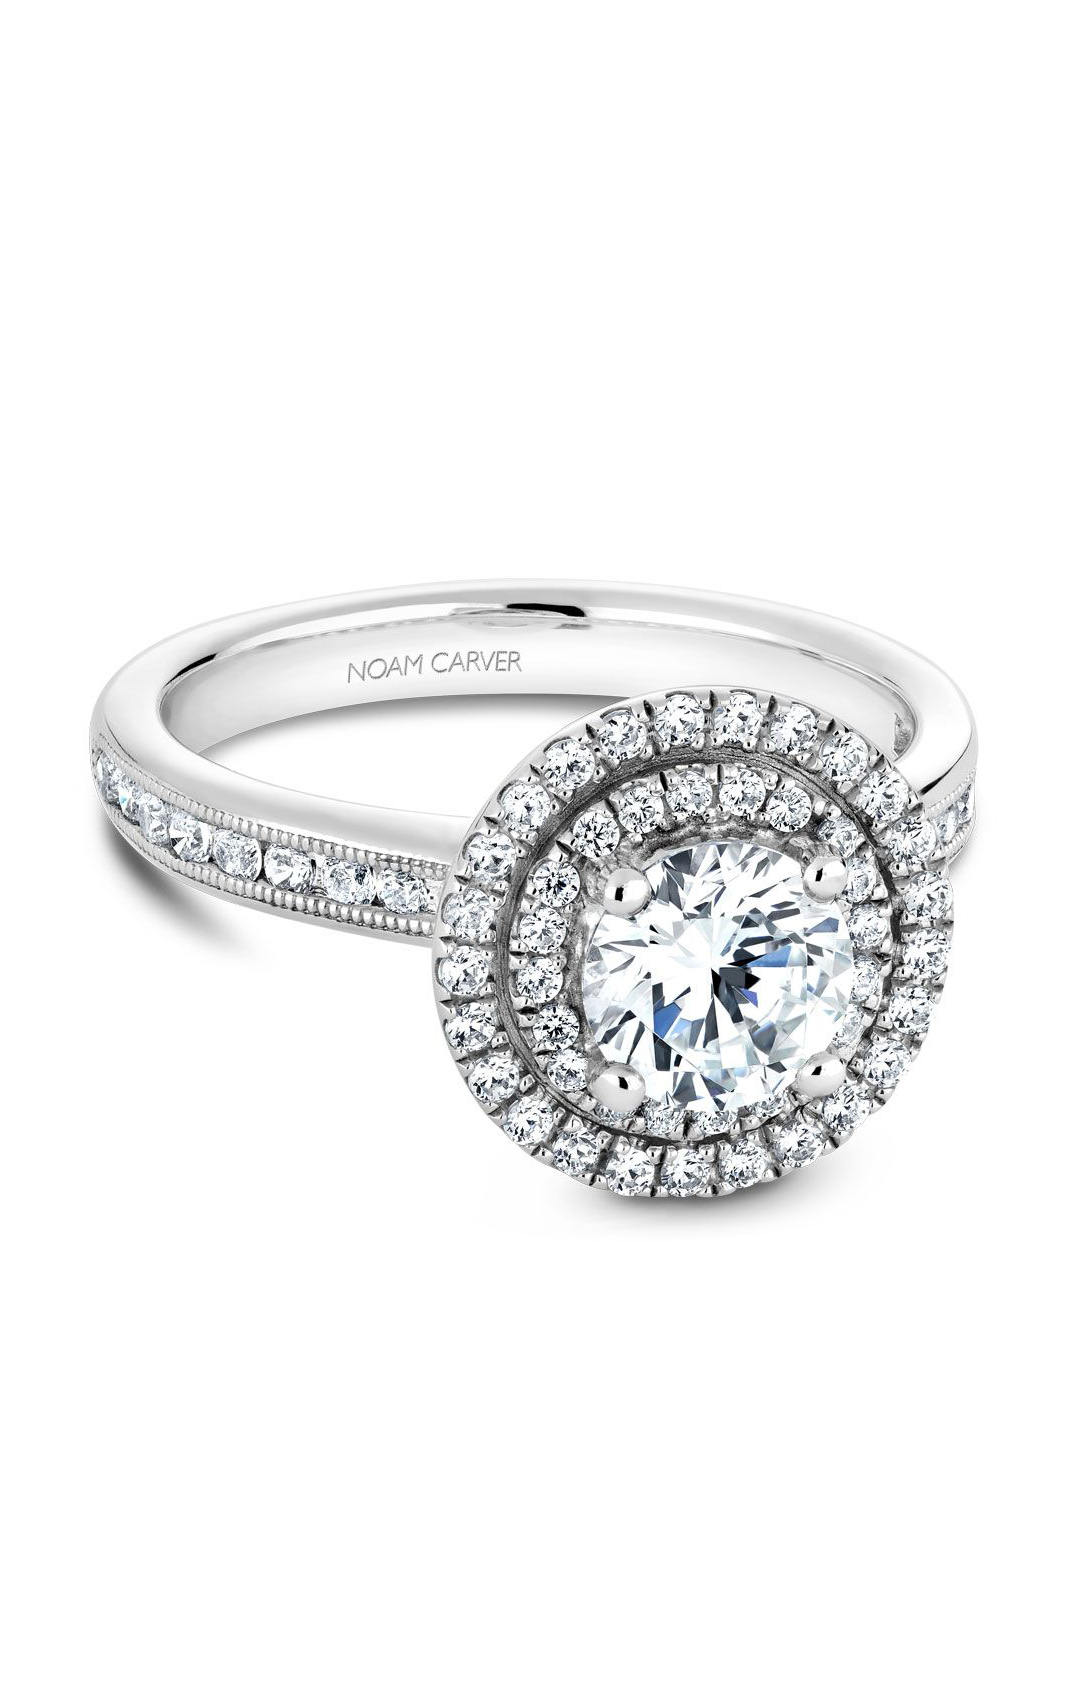 Noam Carver Classic Engagement Ring B145-07A product image